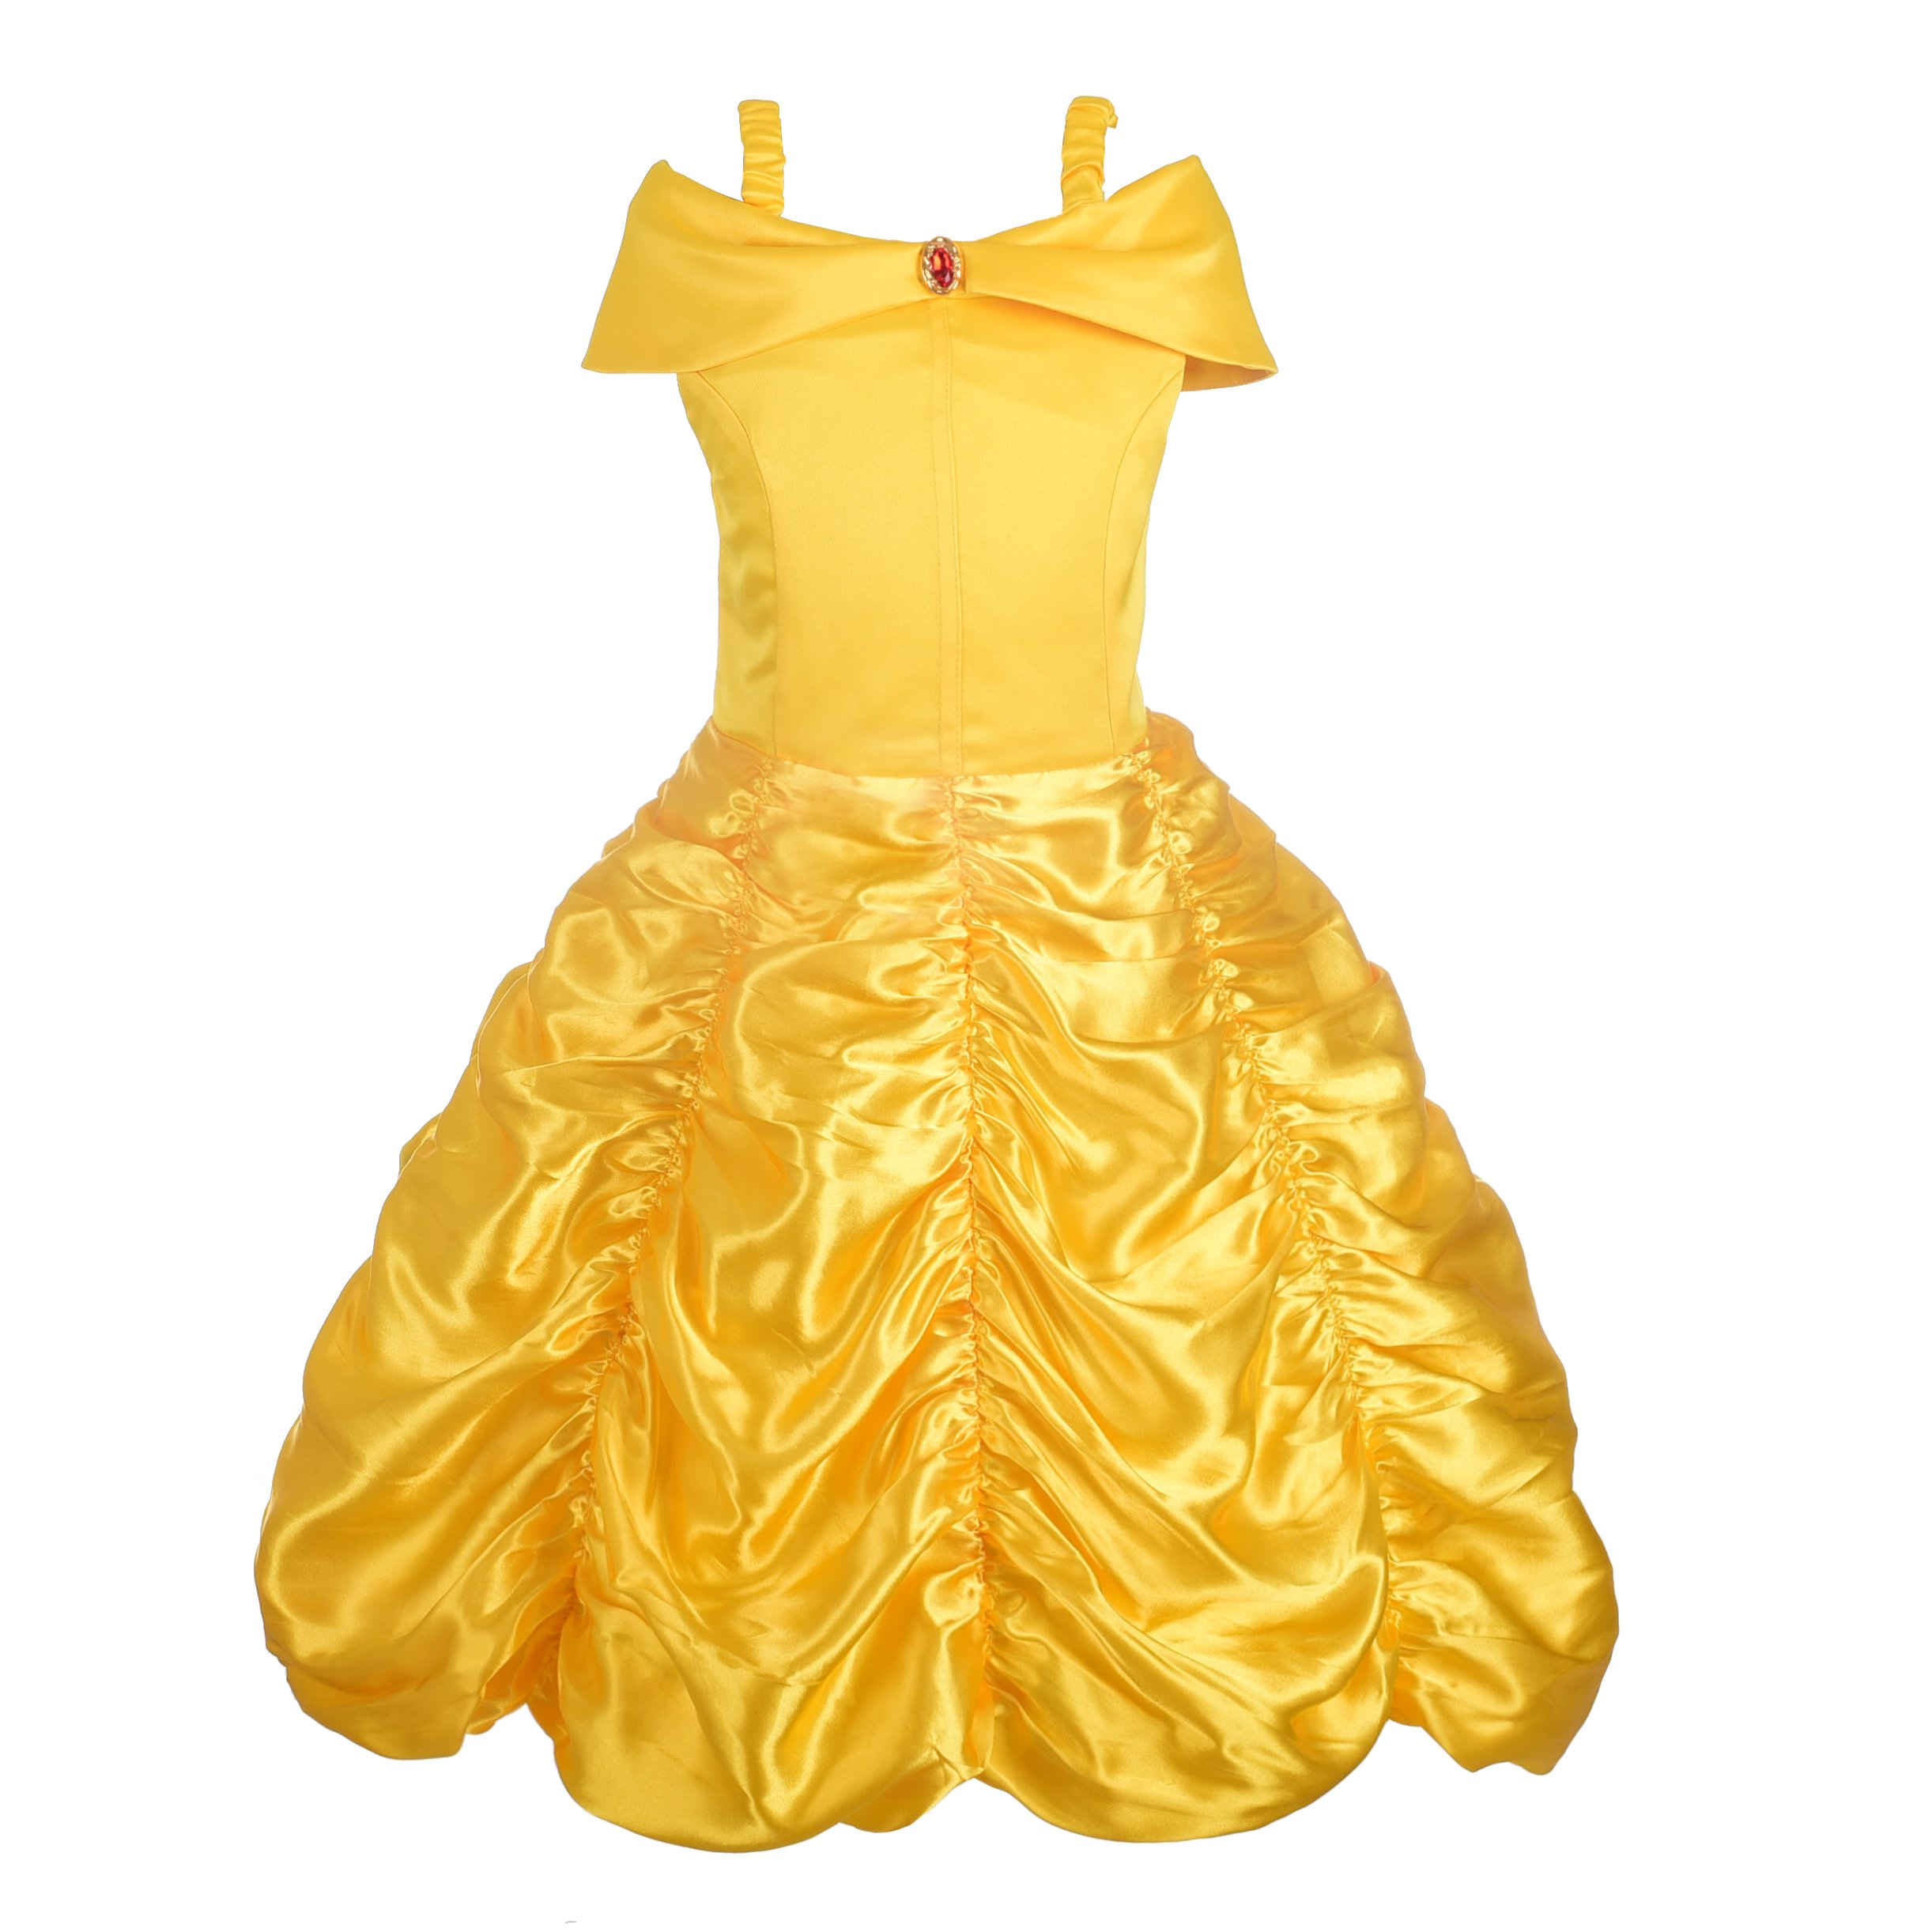 Dressy Daisy Baby Girls' Princess Belle Costumes Princess Dress up Halloween Costume Size 18-24 Months